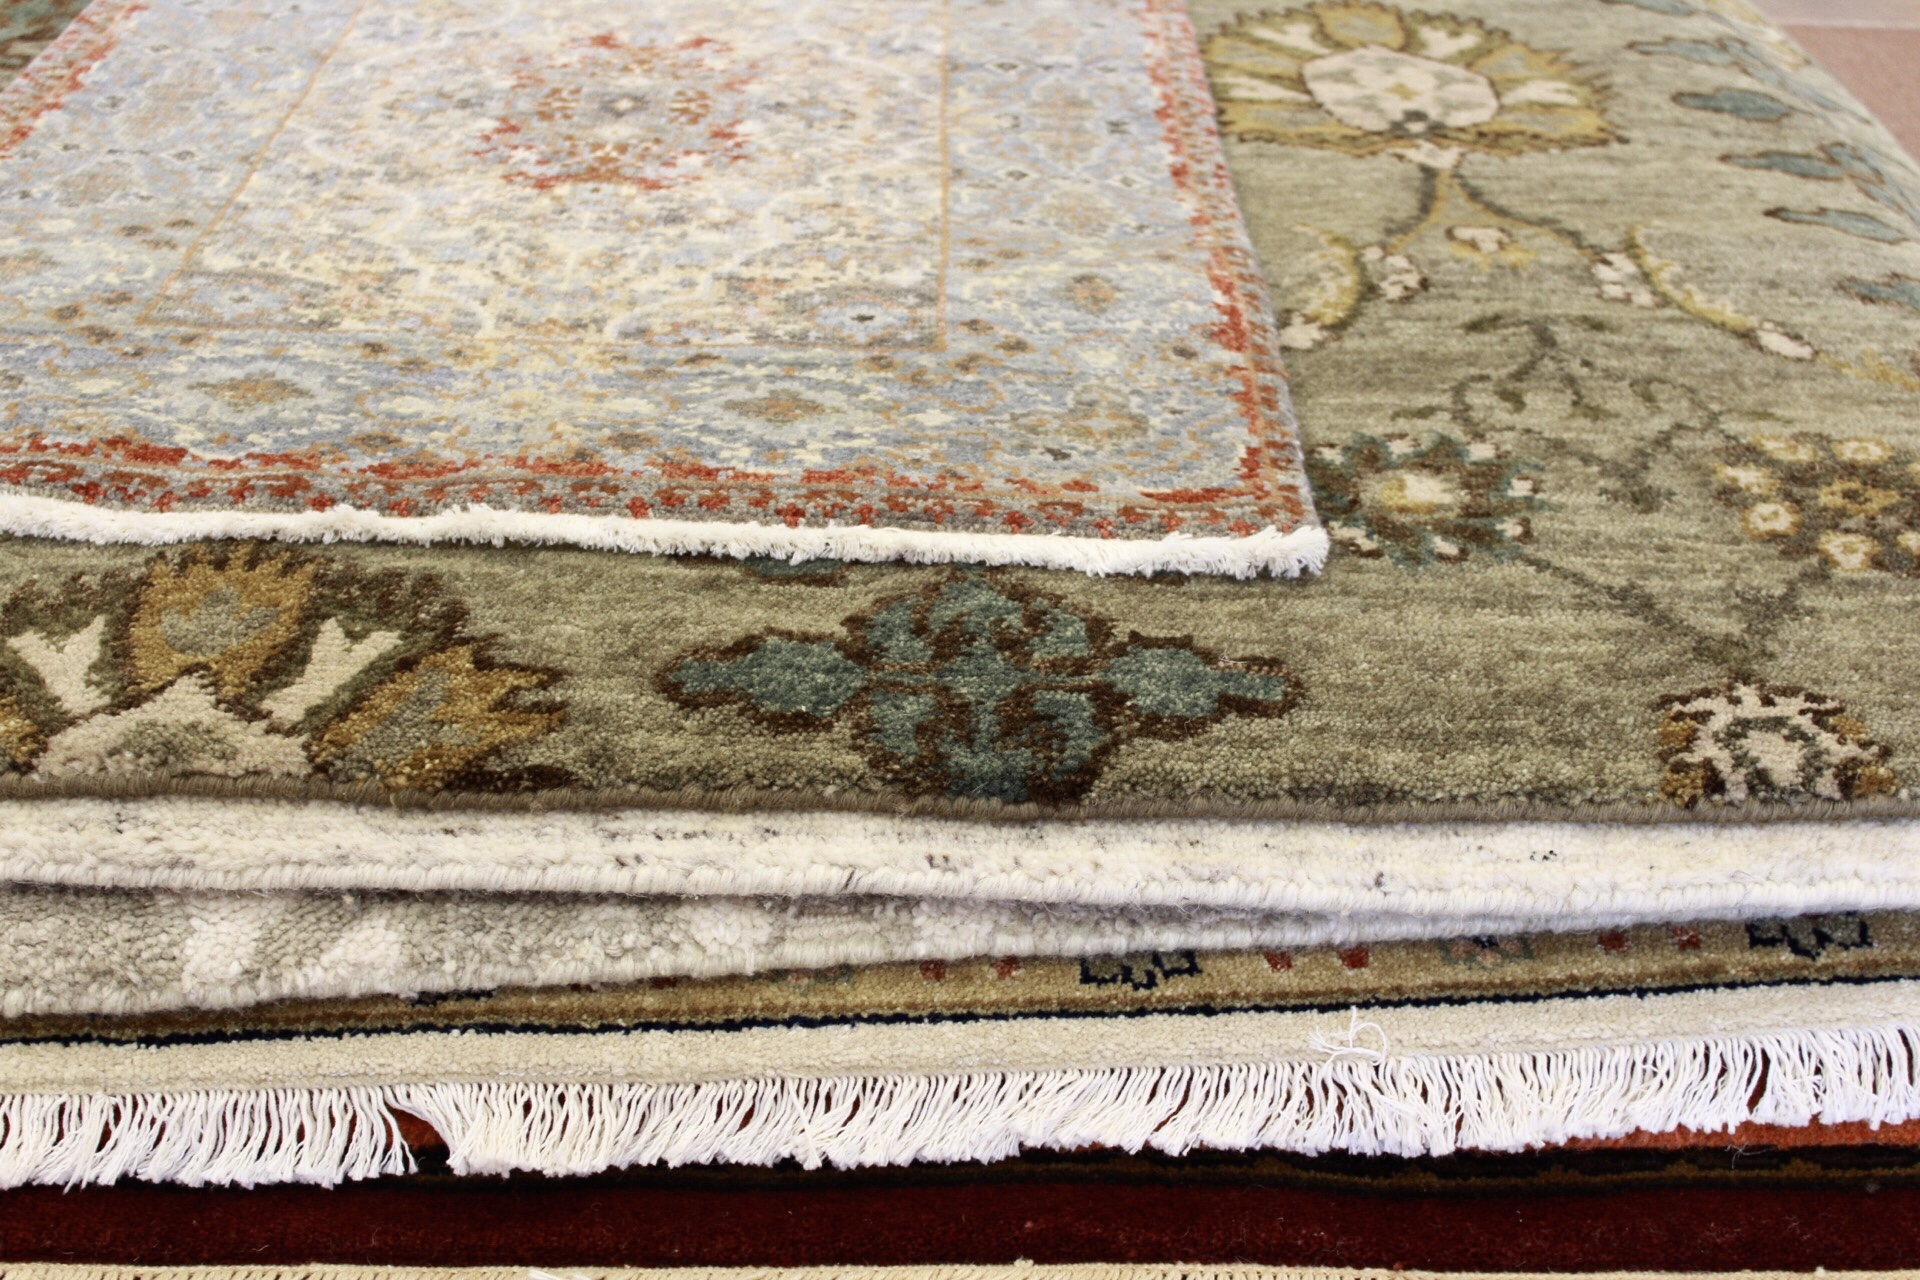 An area rug is also a great way to customize your décor and add some texture.